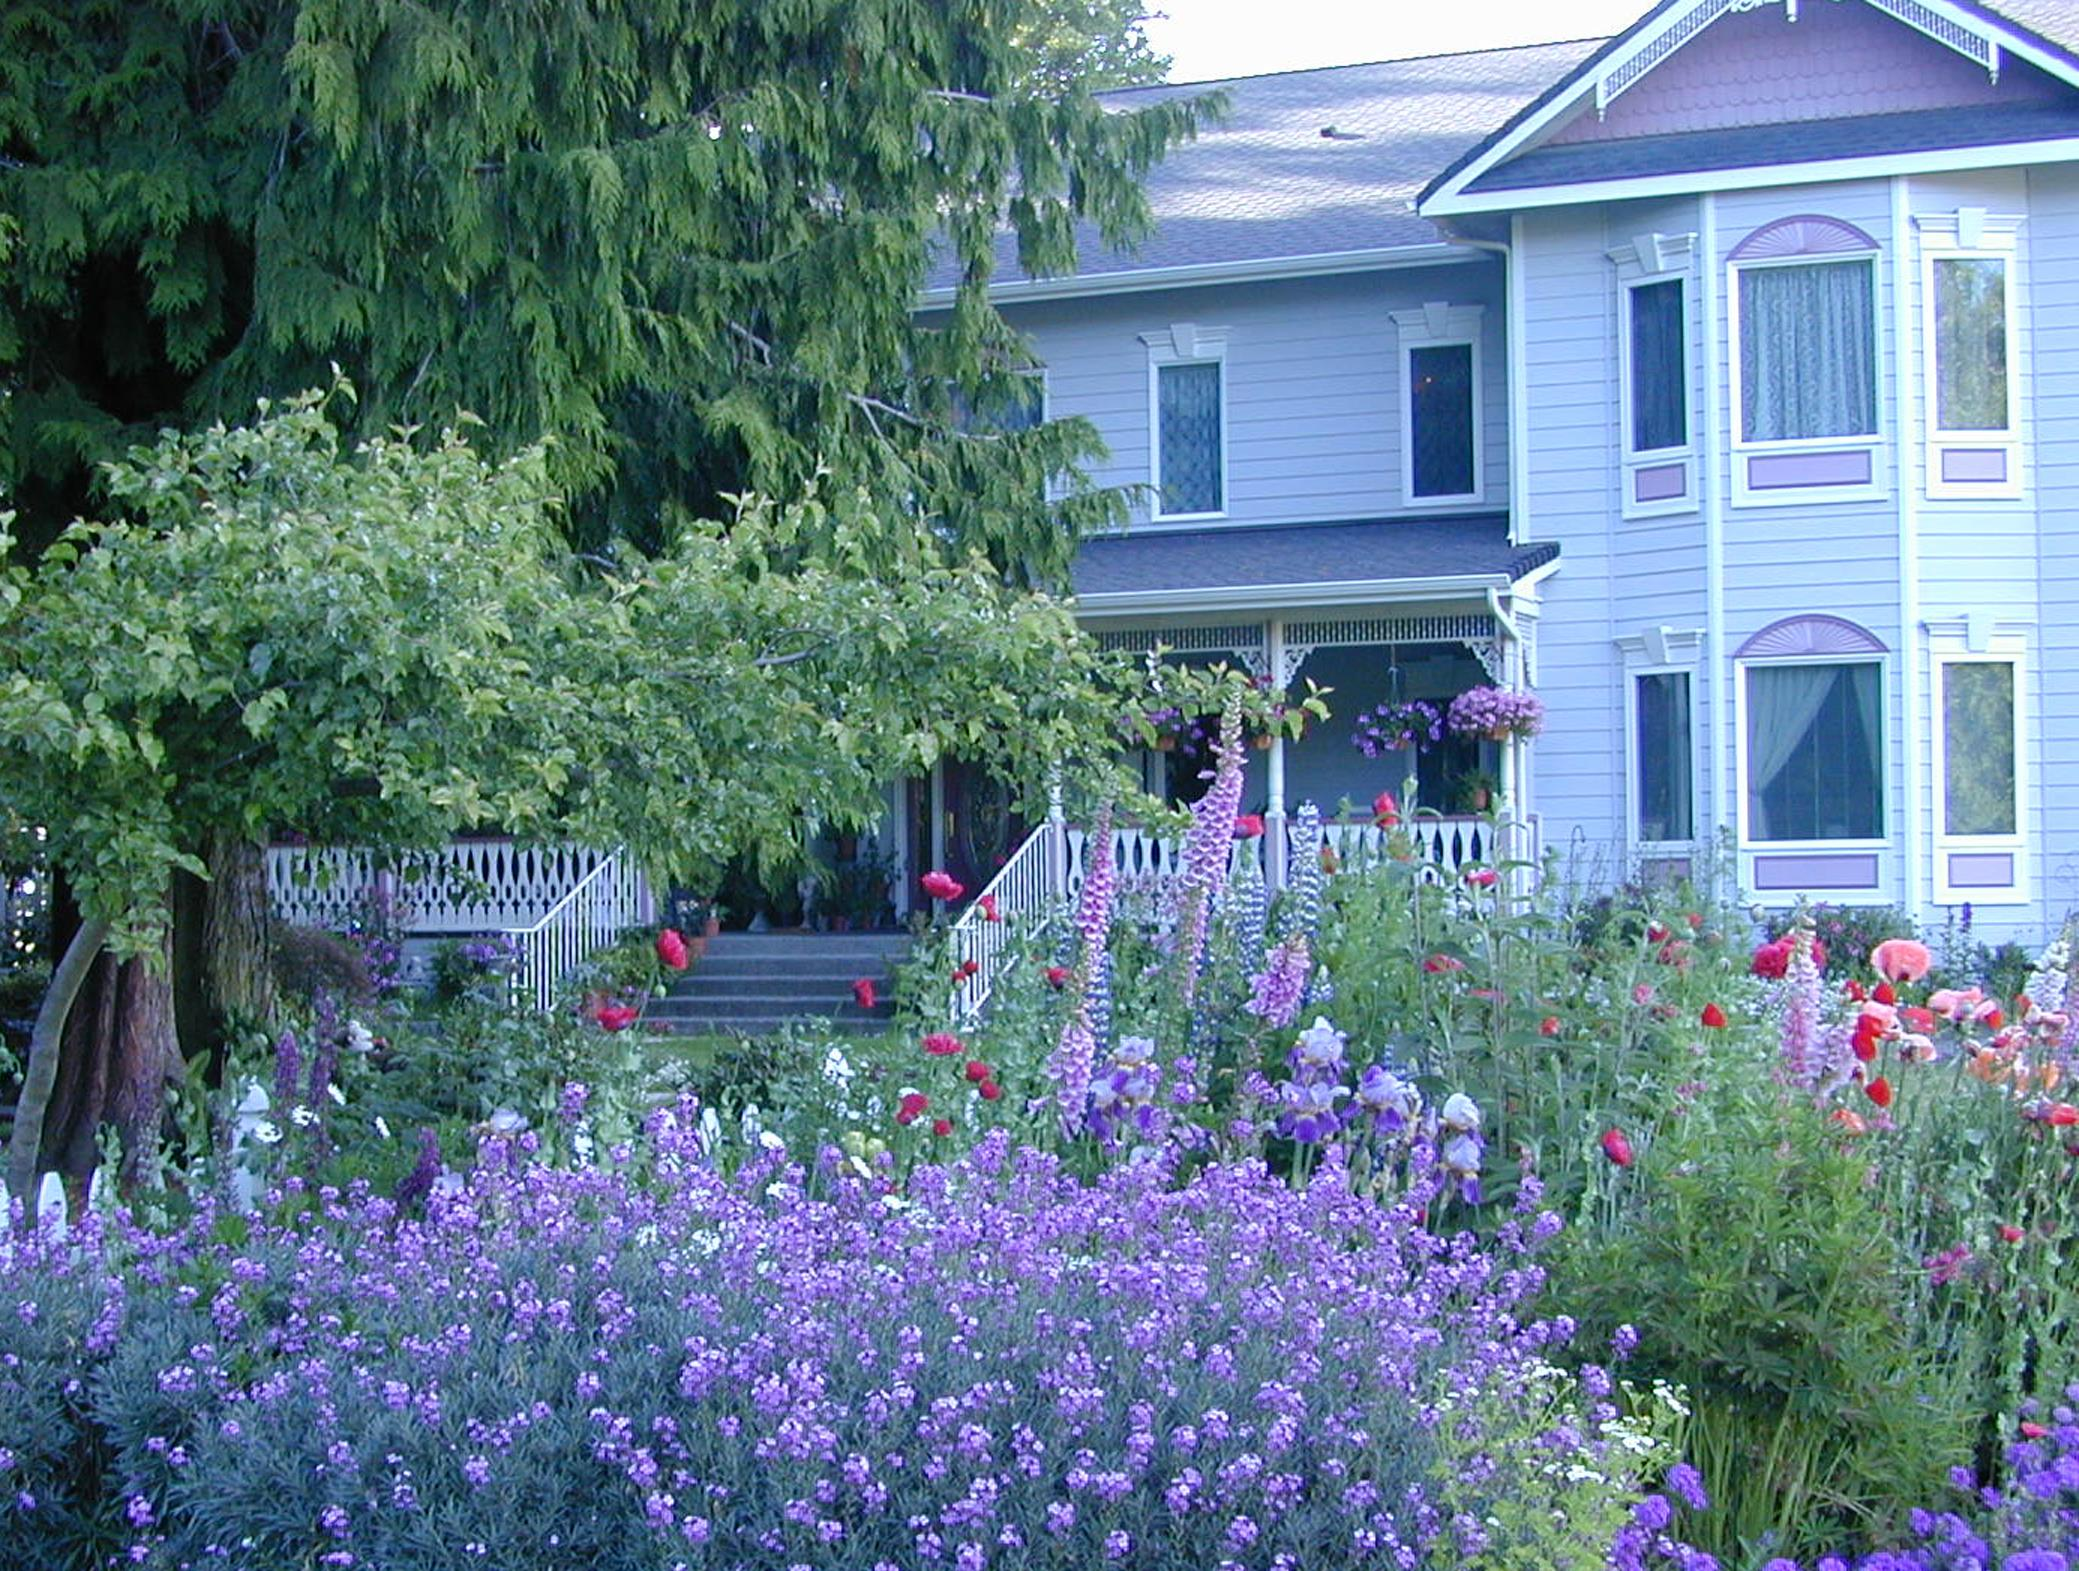 A close up of a flower garden in front of a house at Sea Cliff Gardens Bed & Breakfast.